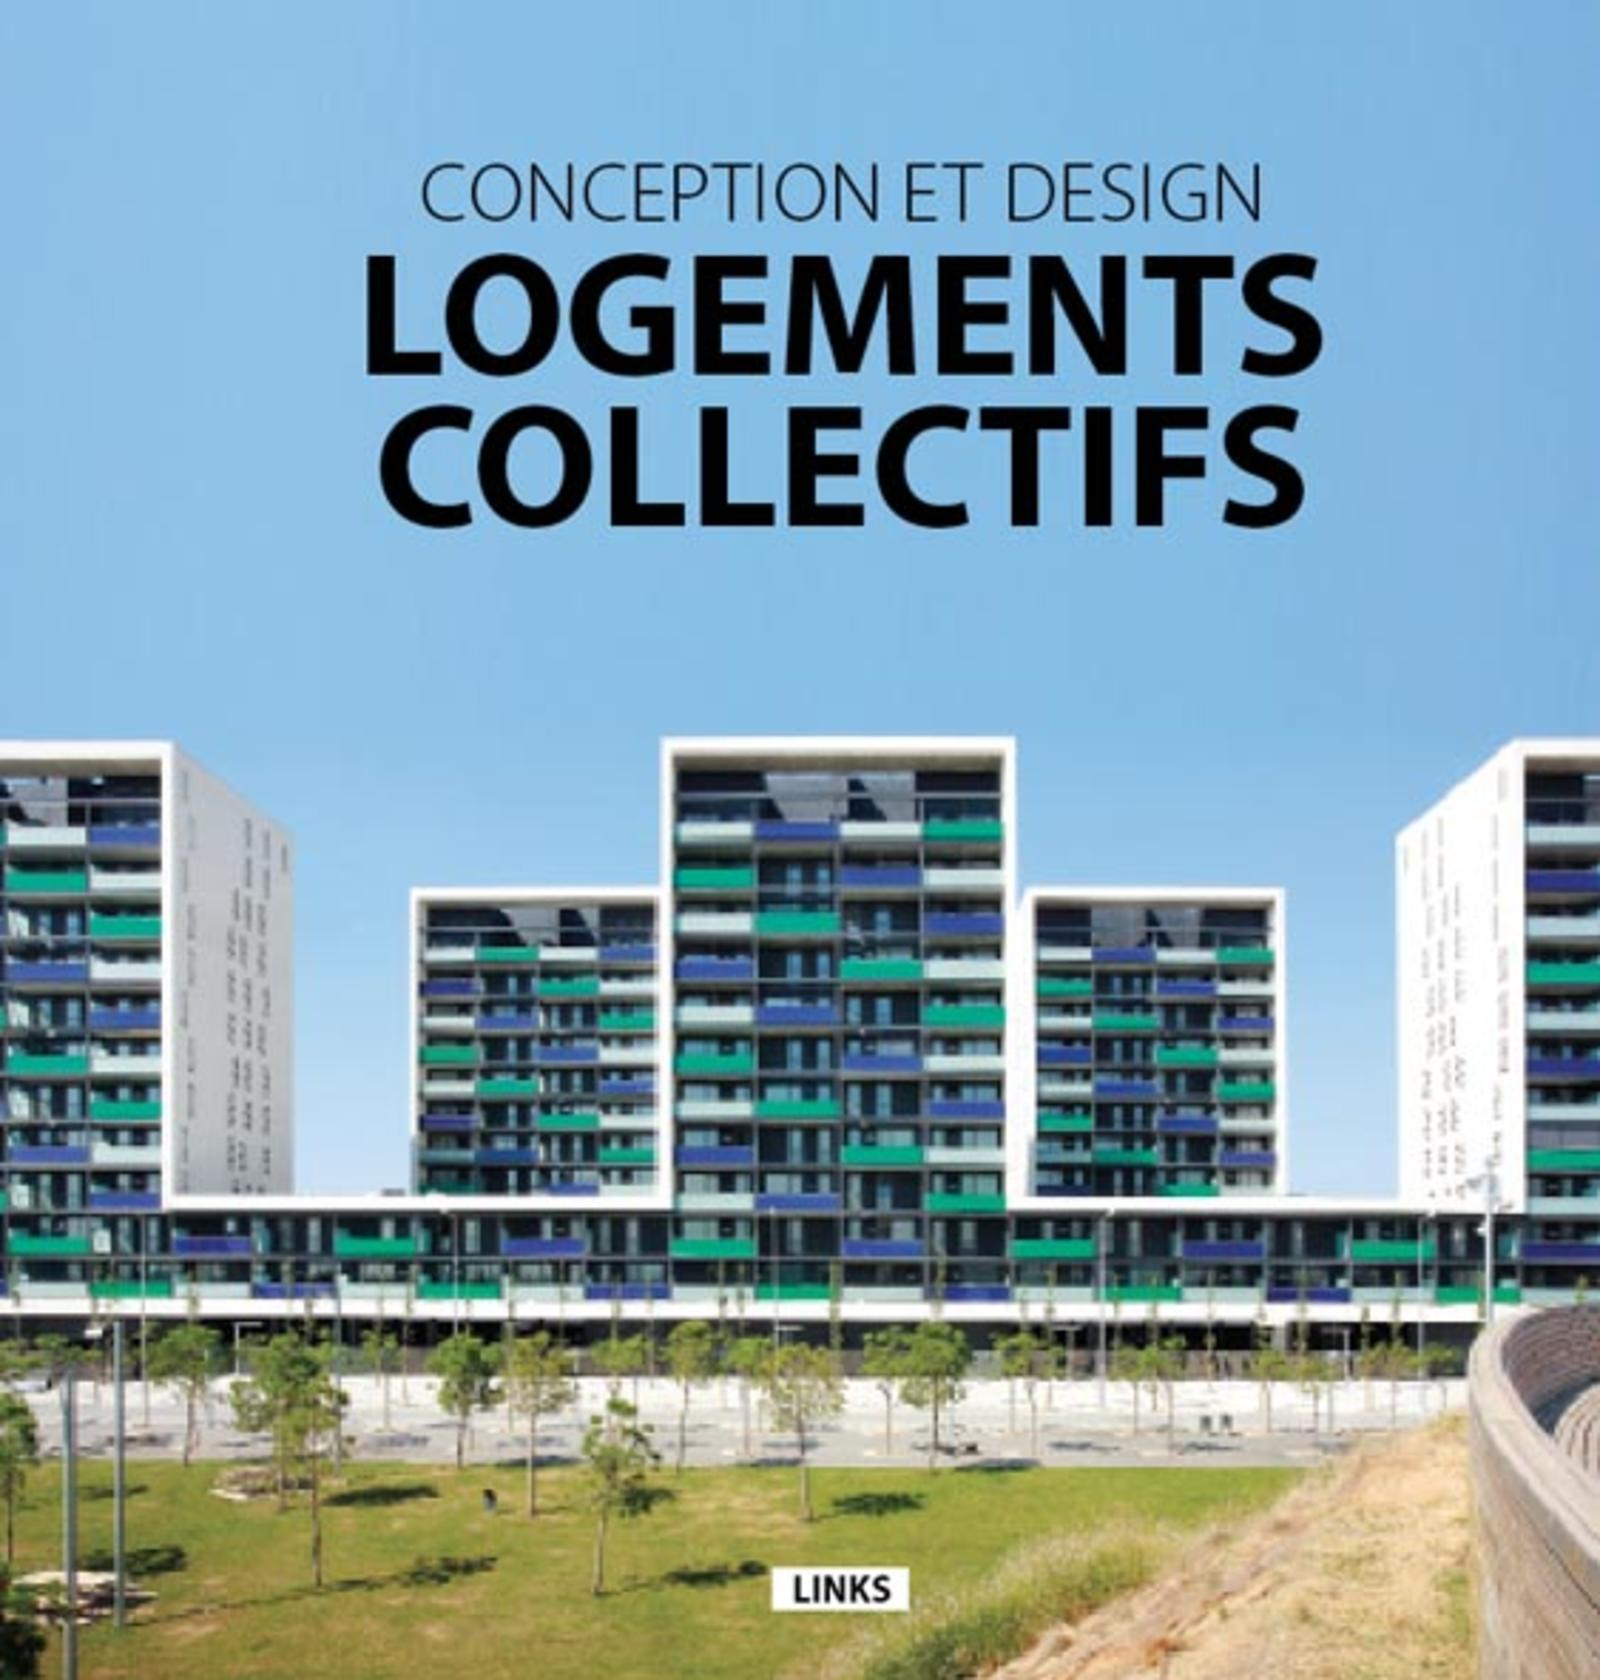 LOGEMENTS COLLECTIFS - CONCEPTION ET DESIGN